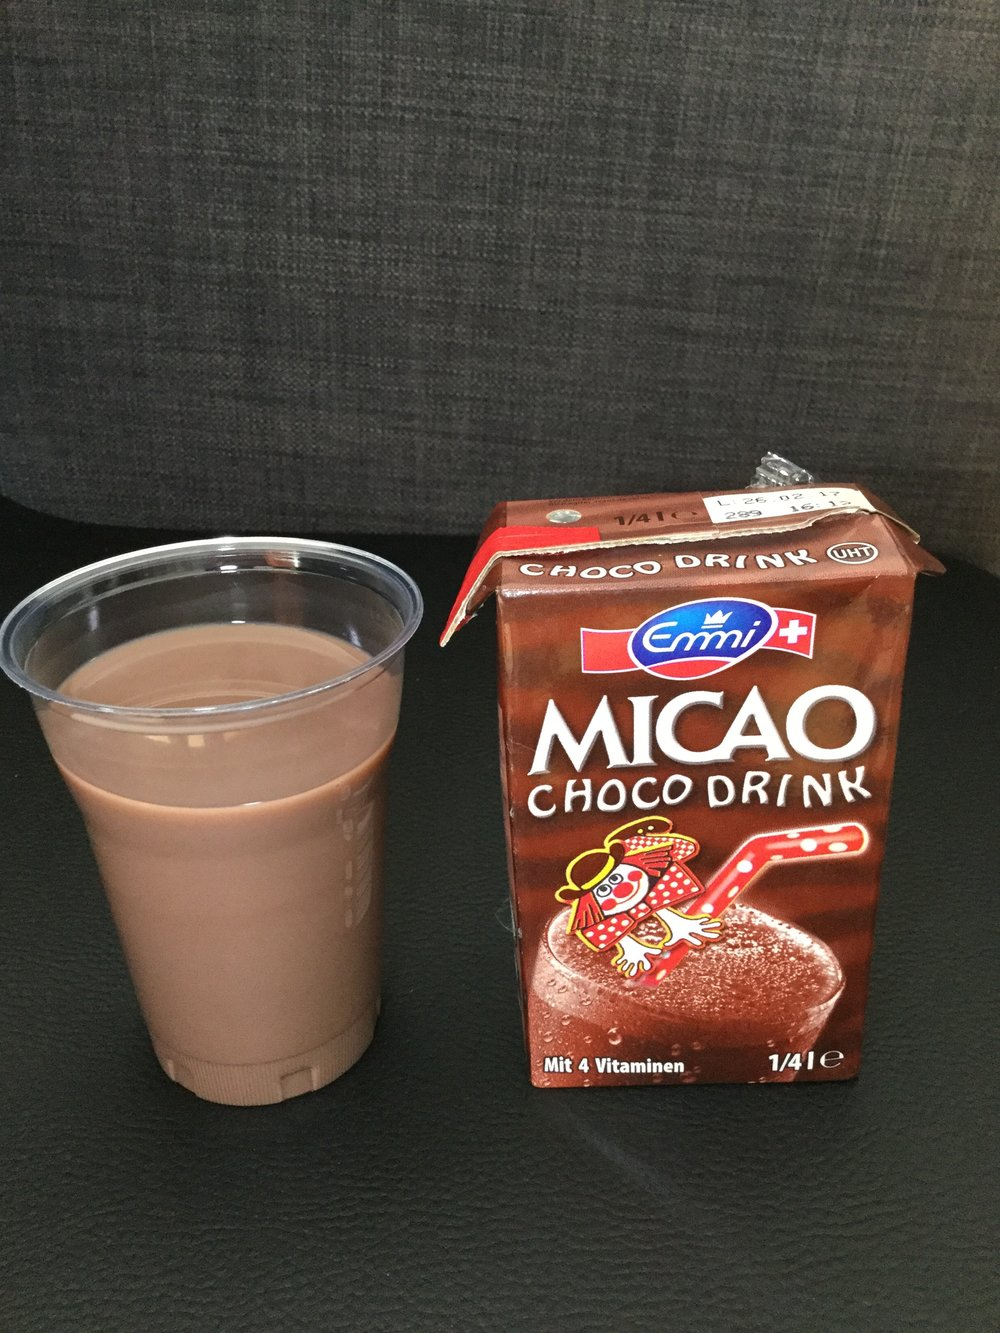 Emmi Micao Choco Drink Cup